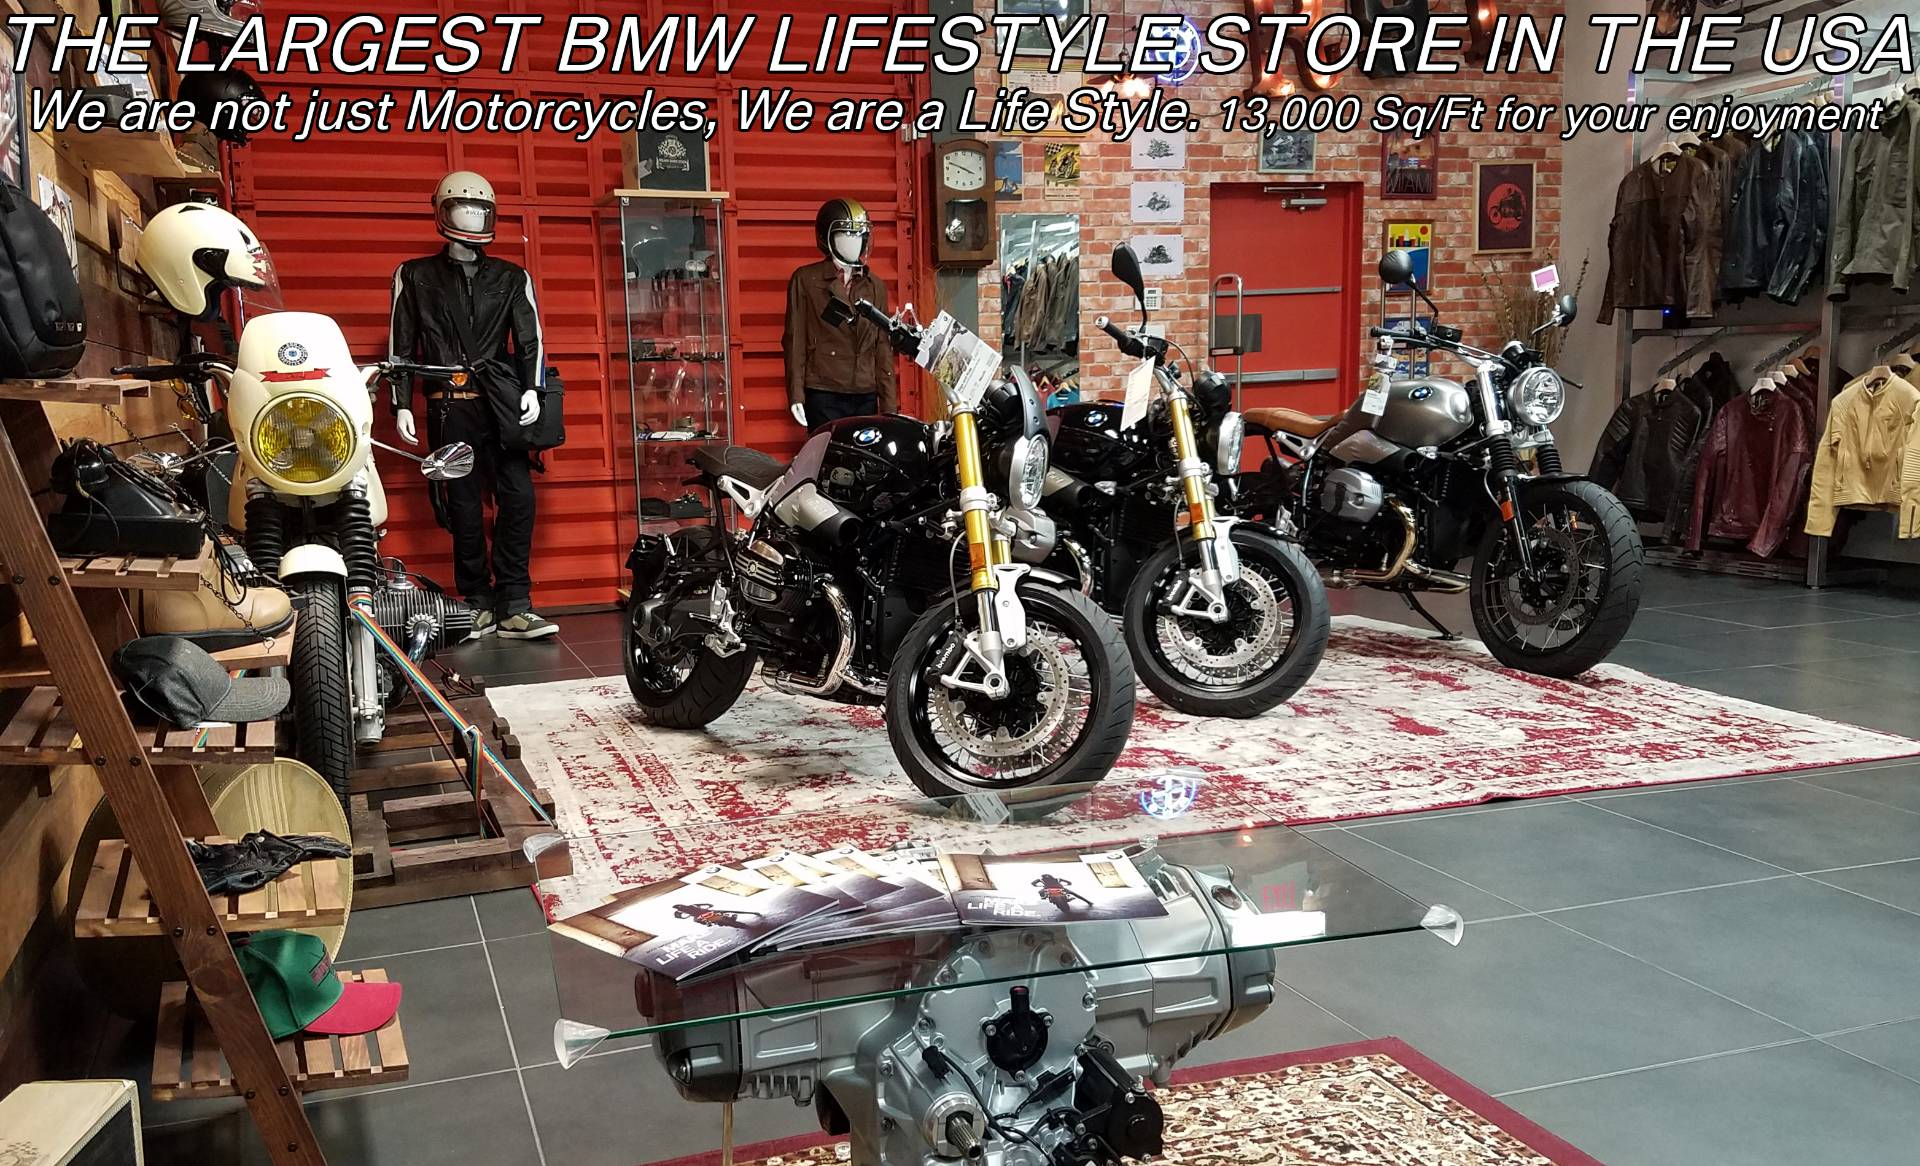 New 2020 2019 BMW R NineT for sale, BMW for sale, BMW Motorcycle Café Racer, new BMW Caffe, Cafe Racer, BMW. BMW Motorcycles of Miami, Motorcycles of Miami, Motorcycles Miami, New Motorcycles, Used Motorcycles, pre-owned. #BMWMotorcyclesOfMiami #MotorcyclesOfMiami. - Photo 45